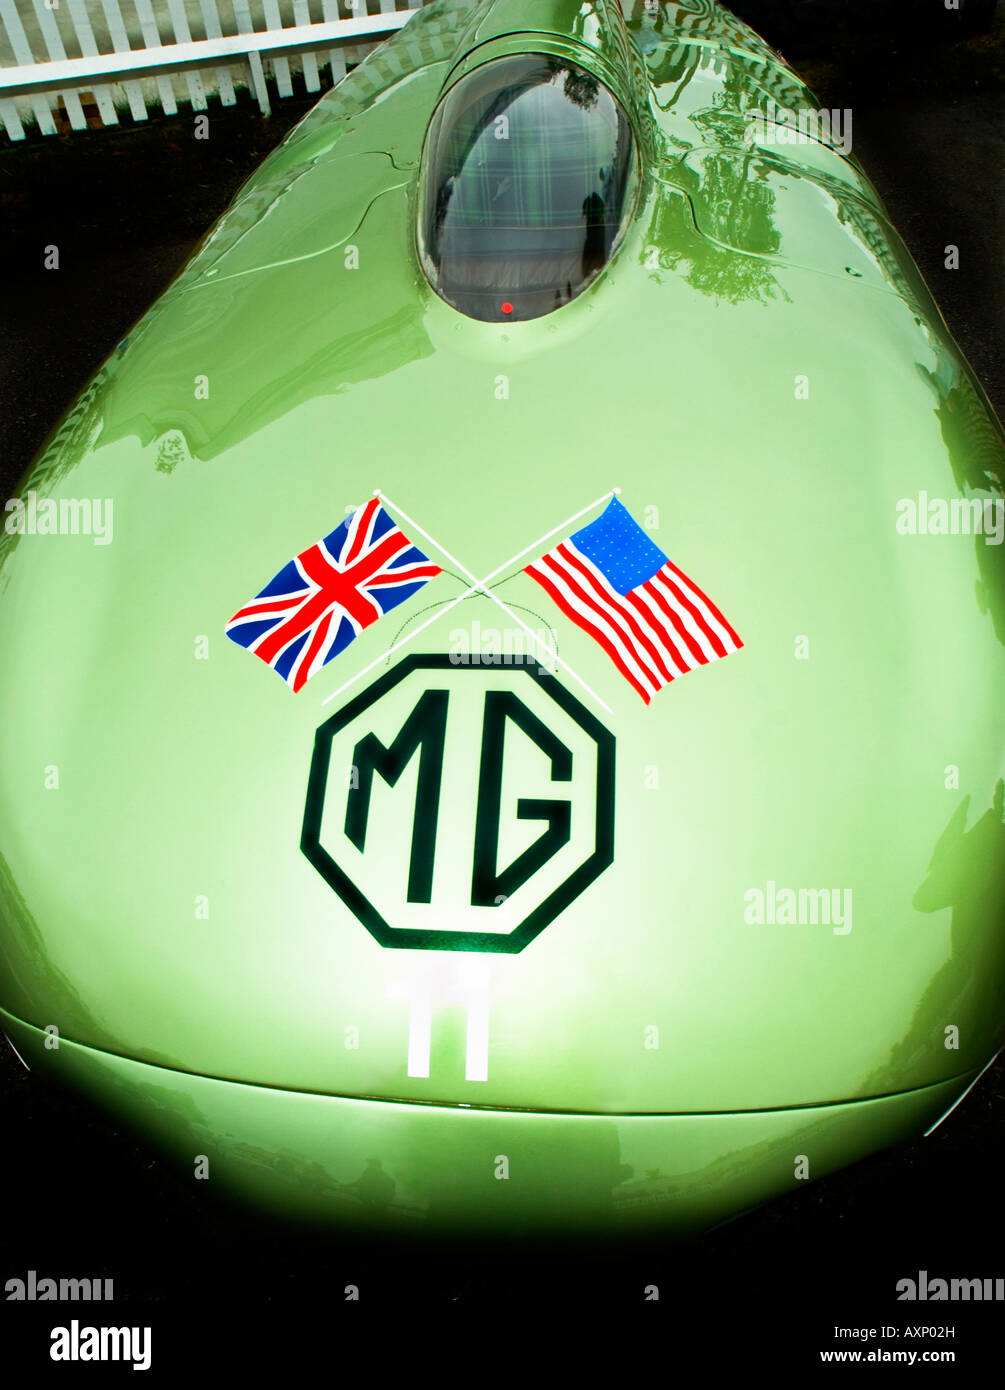 Curvy green MG historic racing car with crossed Union Jack British and USA stars and stripes flag painting logo - Stock Image